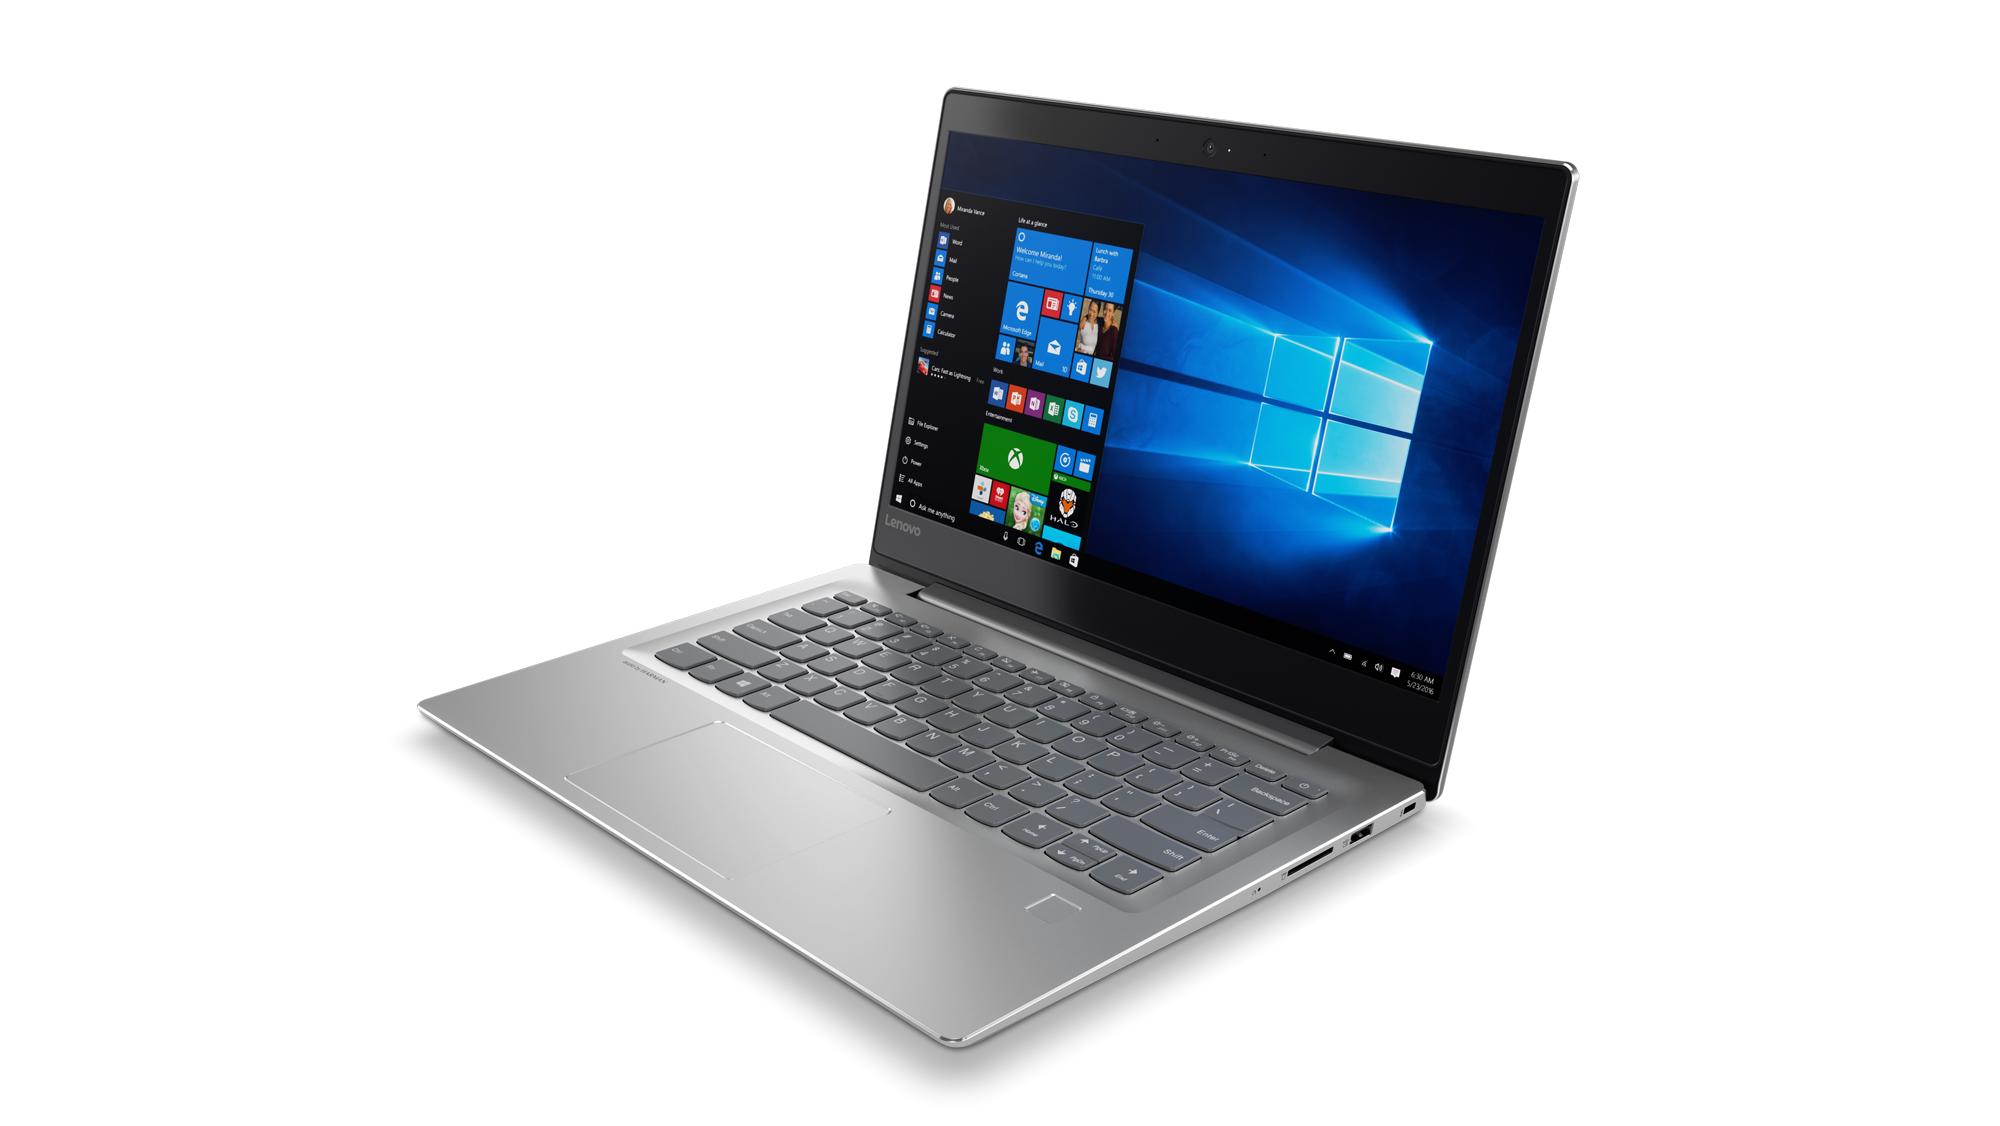 "Lenovo IdeaPad 520S-14IKB i5-7200U 3,10GHz/8GB/SSD 256GB/14"" FHD/IPS/AG/GeForce 2GB/WIN10 šedá 80X2002WCK"